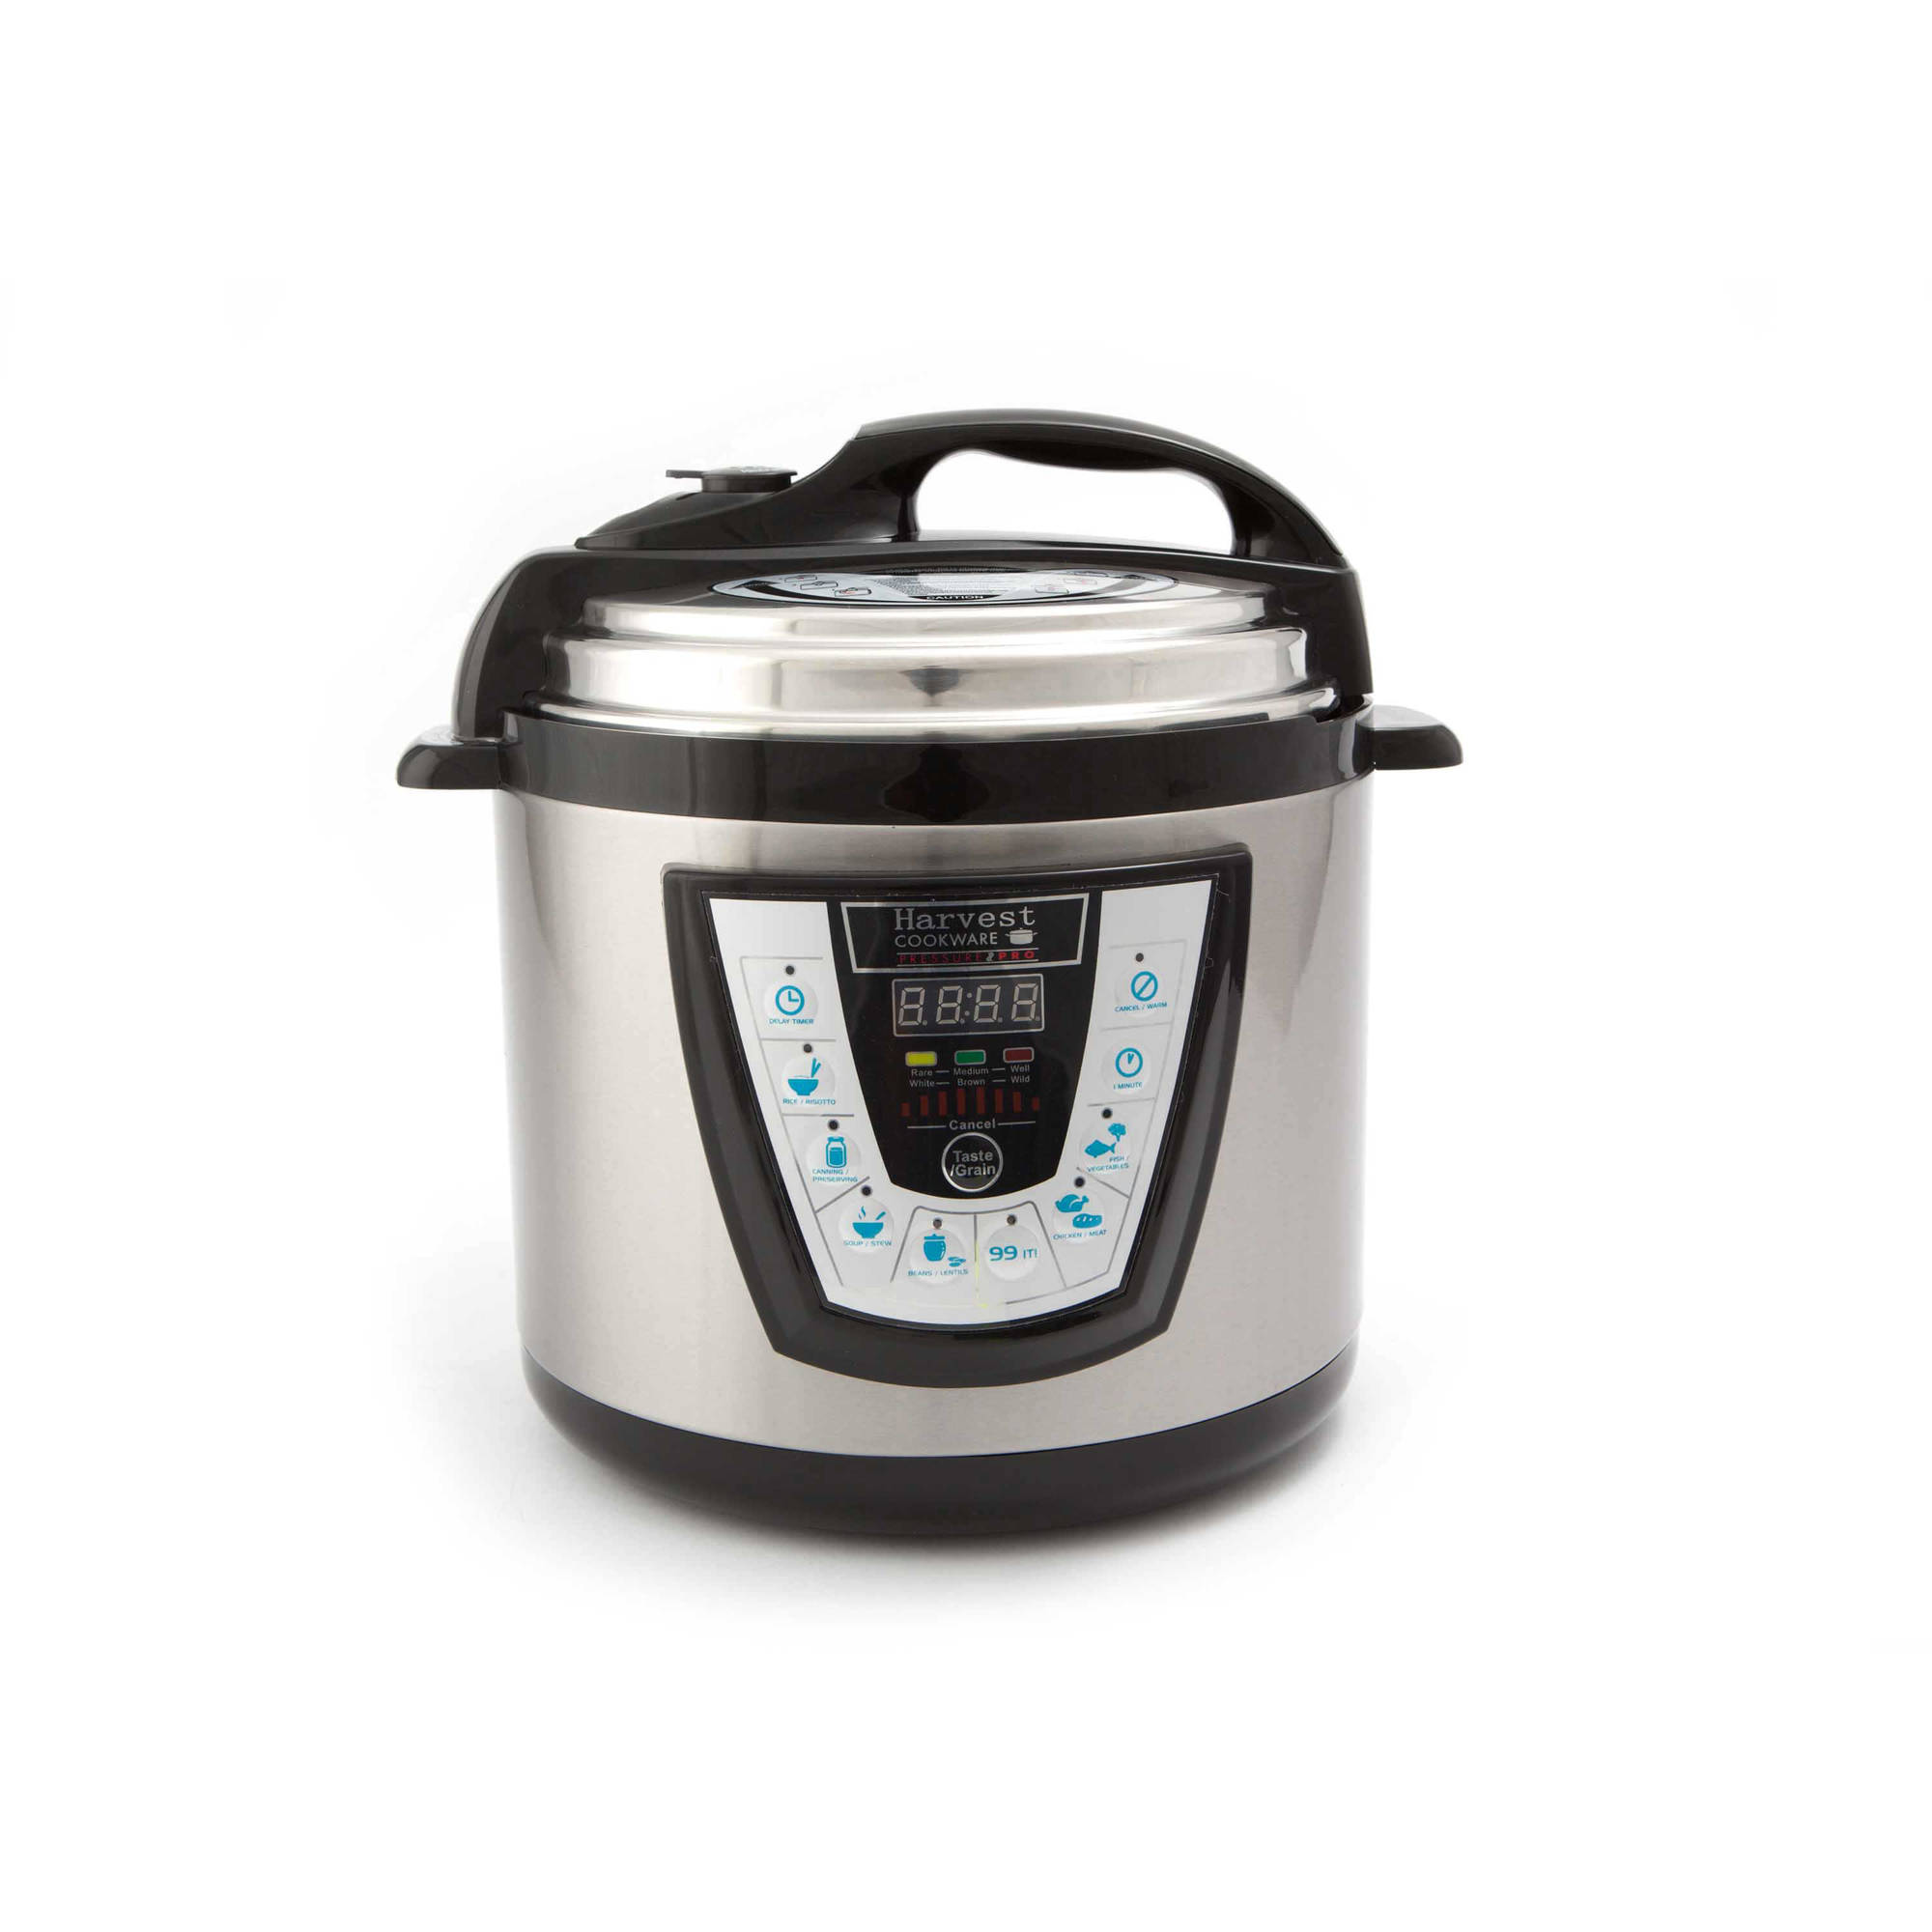 Harvest Cookware Electric Original Pressure Pro 4-Quart Pressure ...